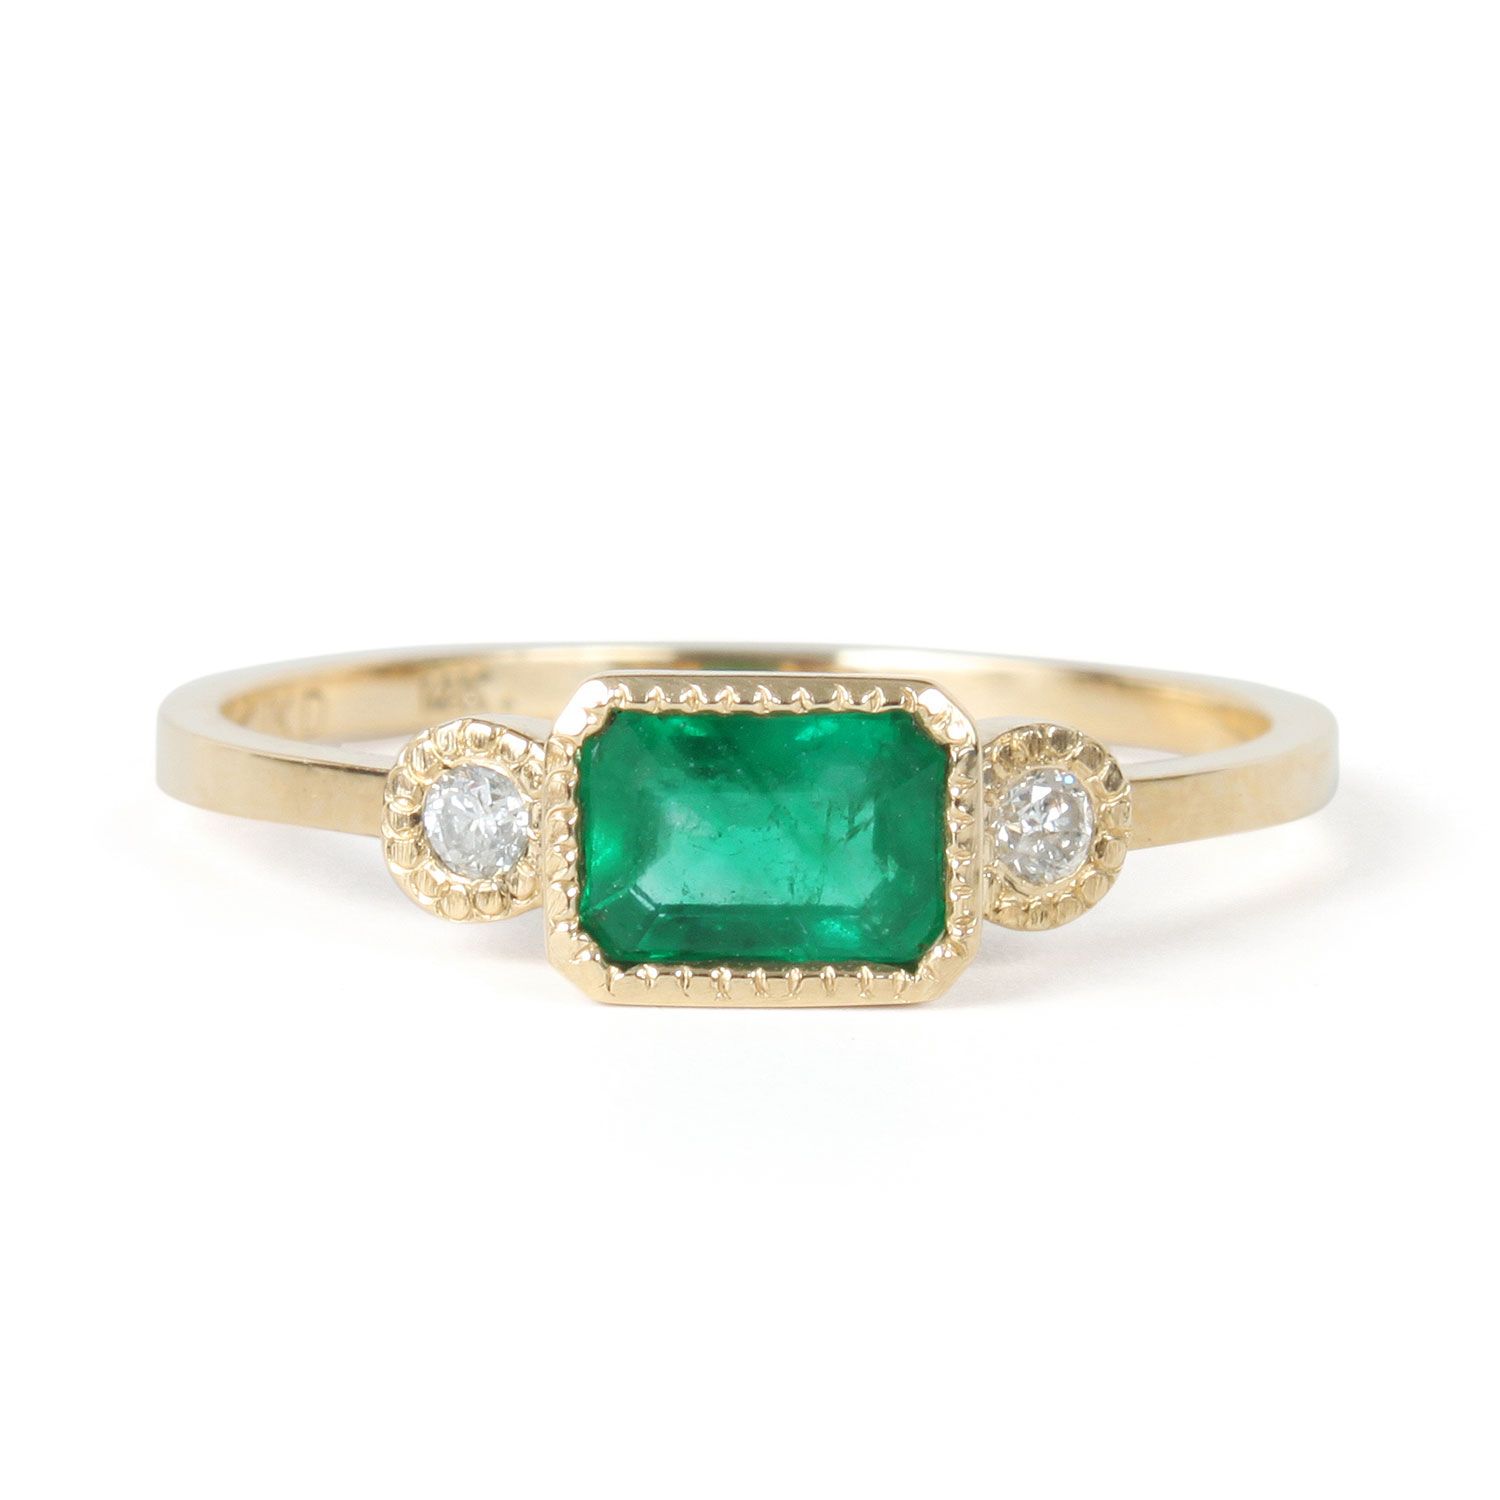 leighton love fred martha stewart vert diamond engagement emerald we gemstone rings colored weddings